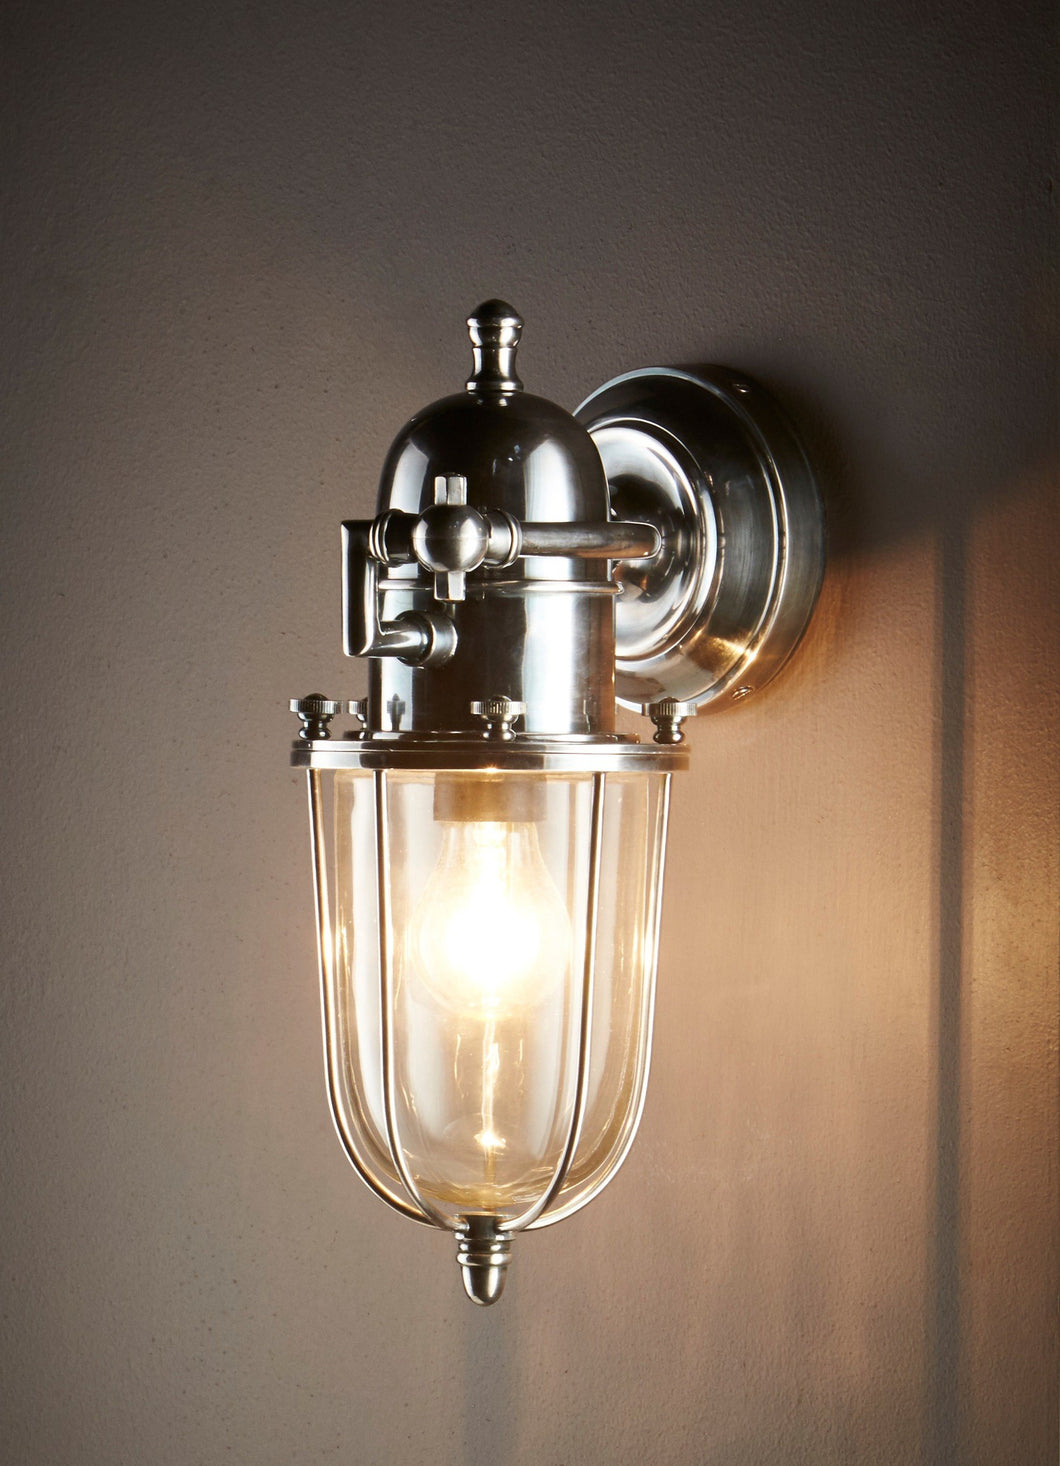 Chapel Wall Lamp | Antique Nickel - Magins Lighting Exterior Wall Lamps Emac & Lawton Magins Lighting